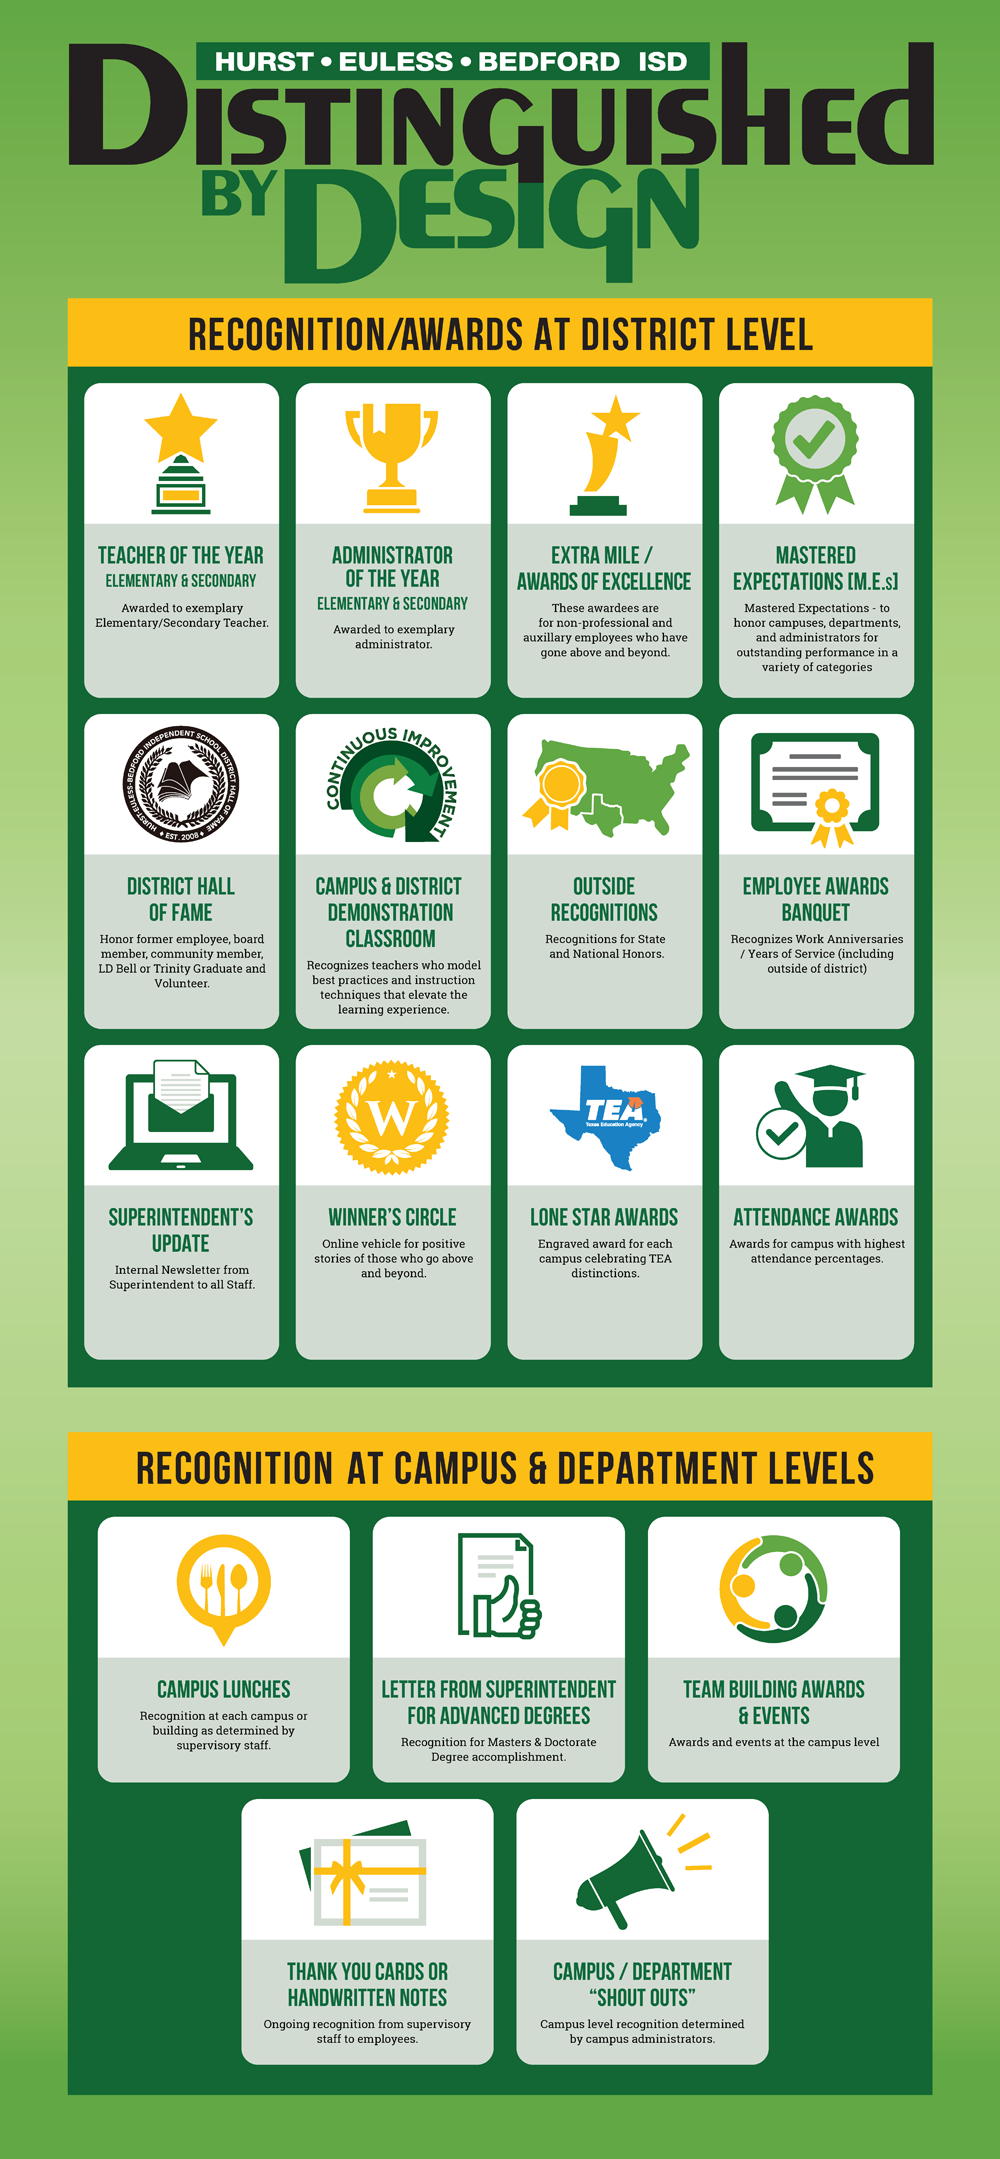 Distinguished by Design infographic - full transcript is on this page